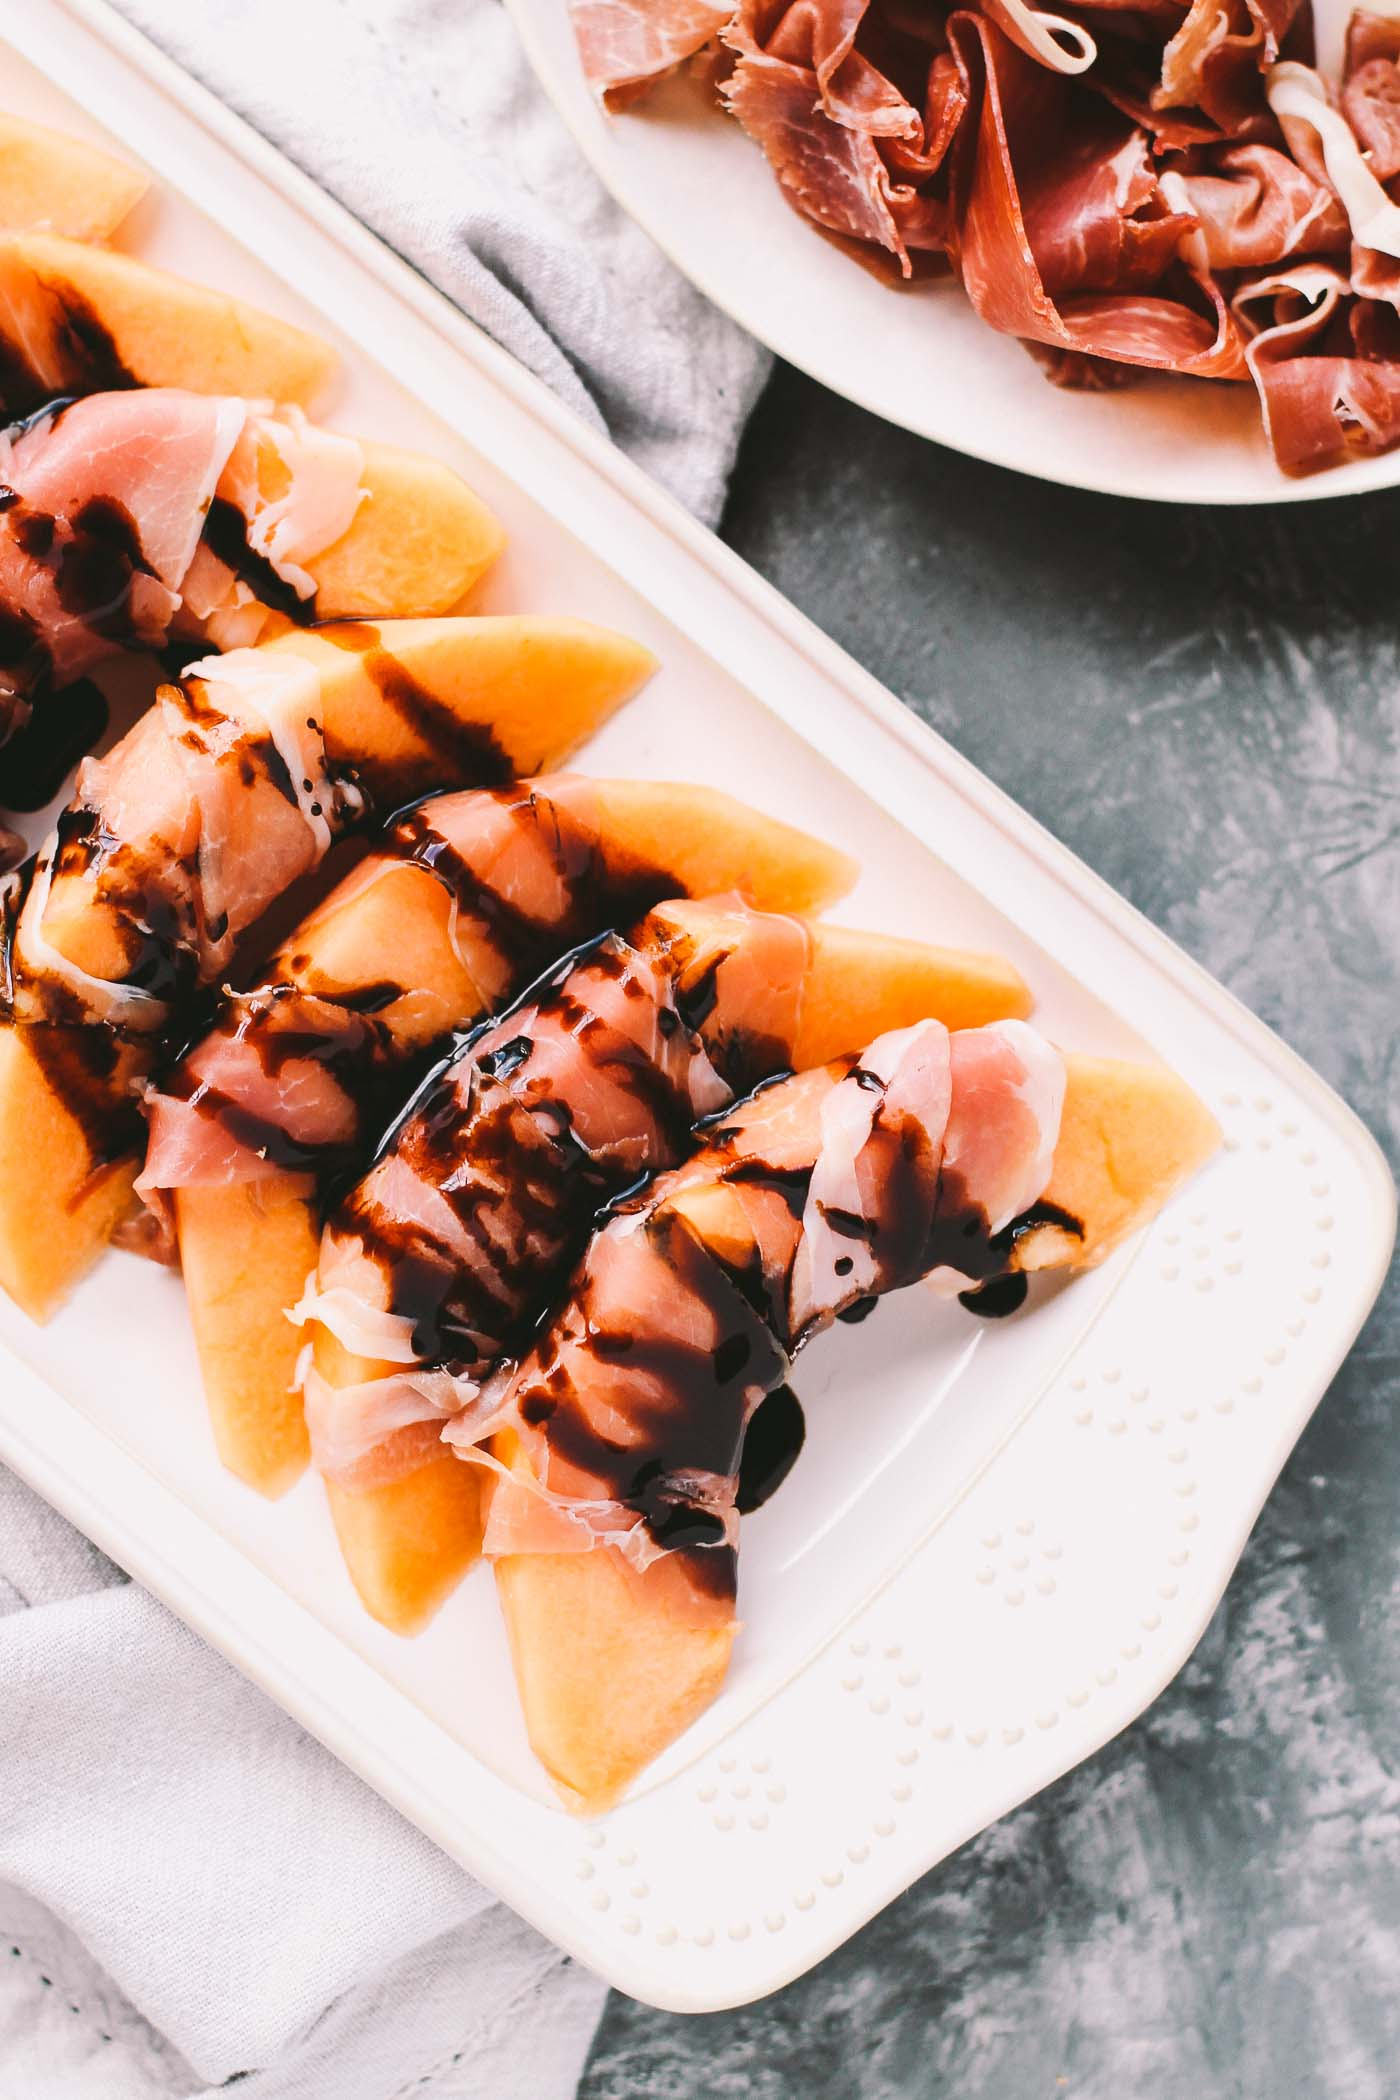 a three-ingredient recipe for prosciutto wrapped cantaloupe topped with balsamic glaze. this appetizer is perfectly balanced, super simple, & most importantly - so delicious! prosciutto-wrapped cantaloupe with balsamic glaze are perfect for summer parties & easy entertaining on hot summer nights. | prosciutto, easy appetizer for a crowd, summer food, summer party, healthy appetizer recipe, make ahead appetizer, girls night recipe, date night recipe |